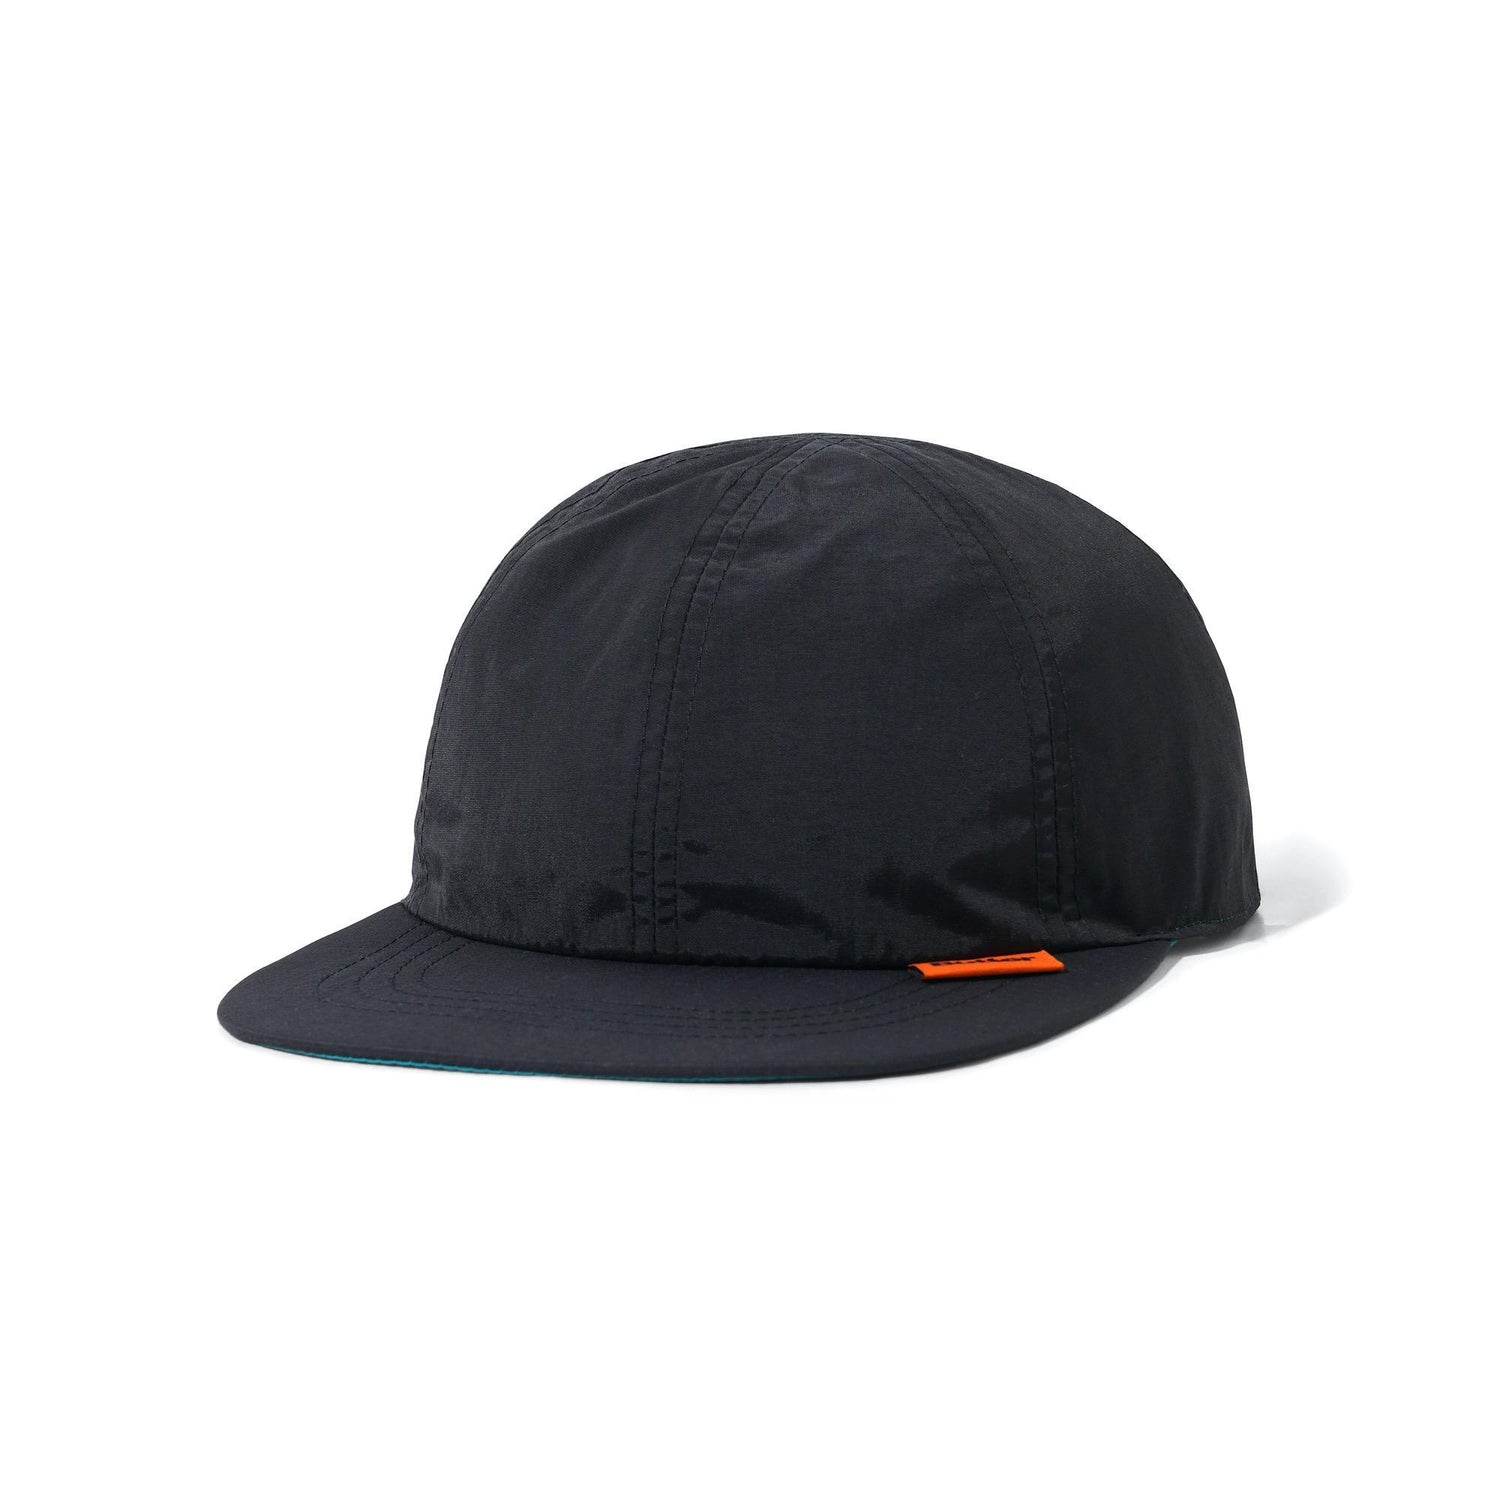 Reversible 6 Panel, Black / Marine